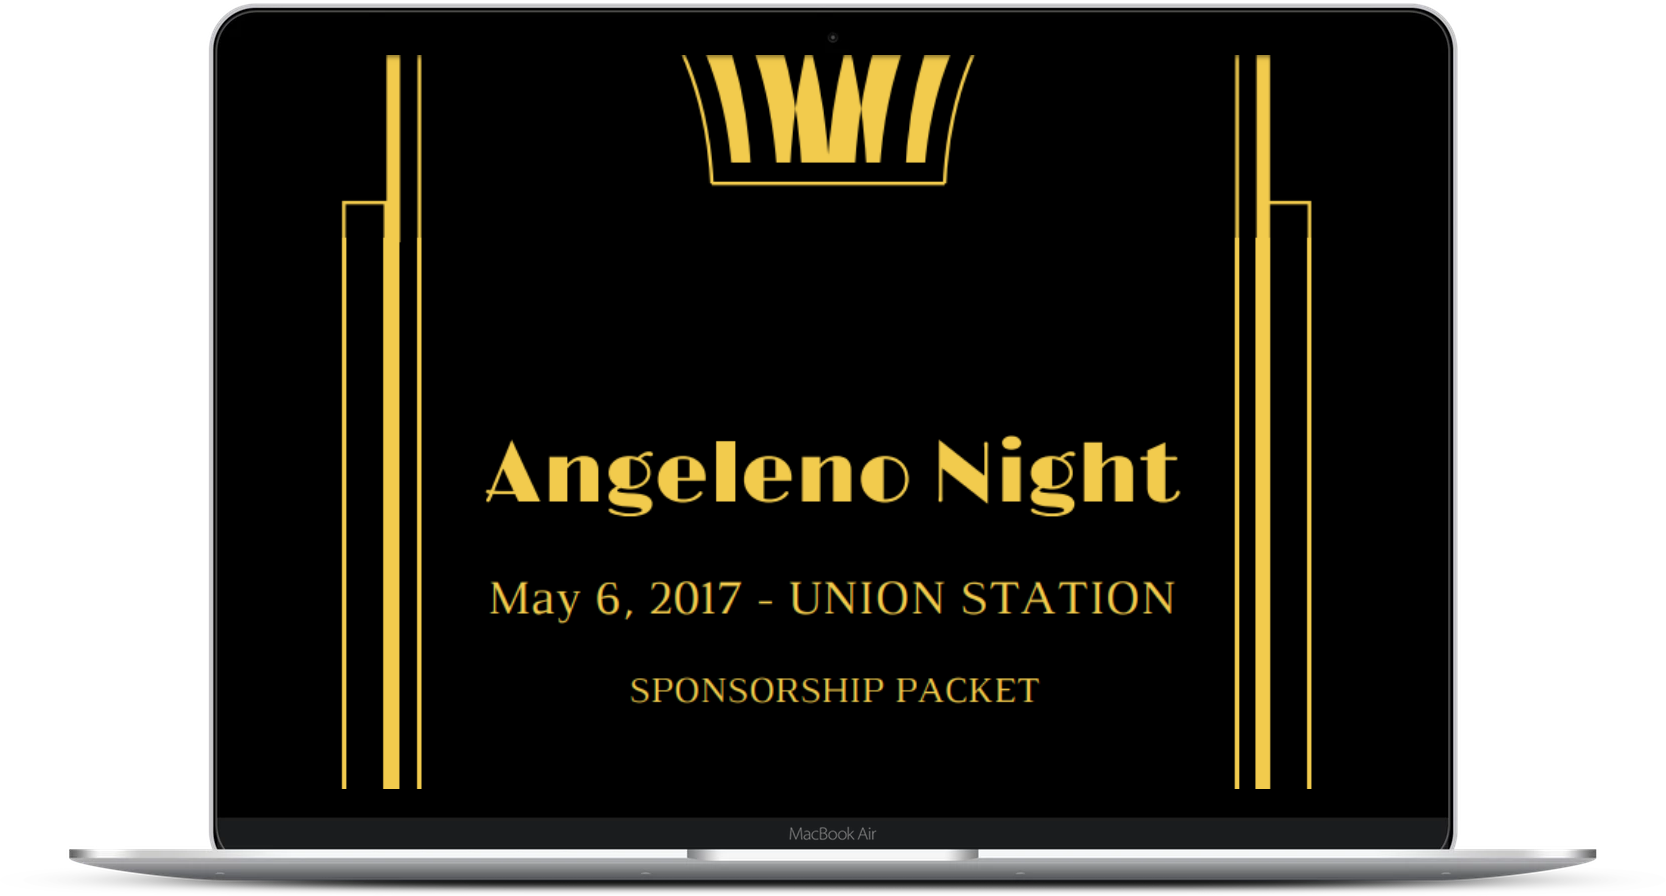 Angeleno Night MacBook Air Mockup.png